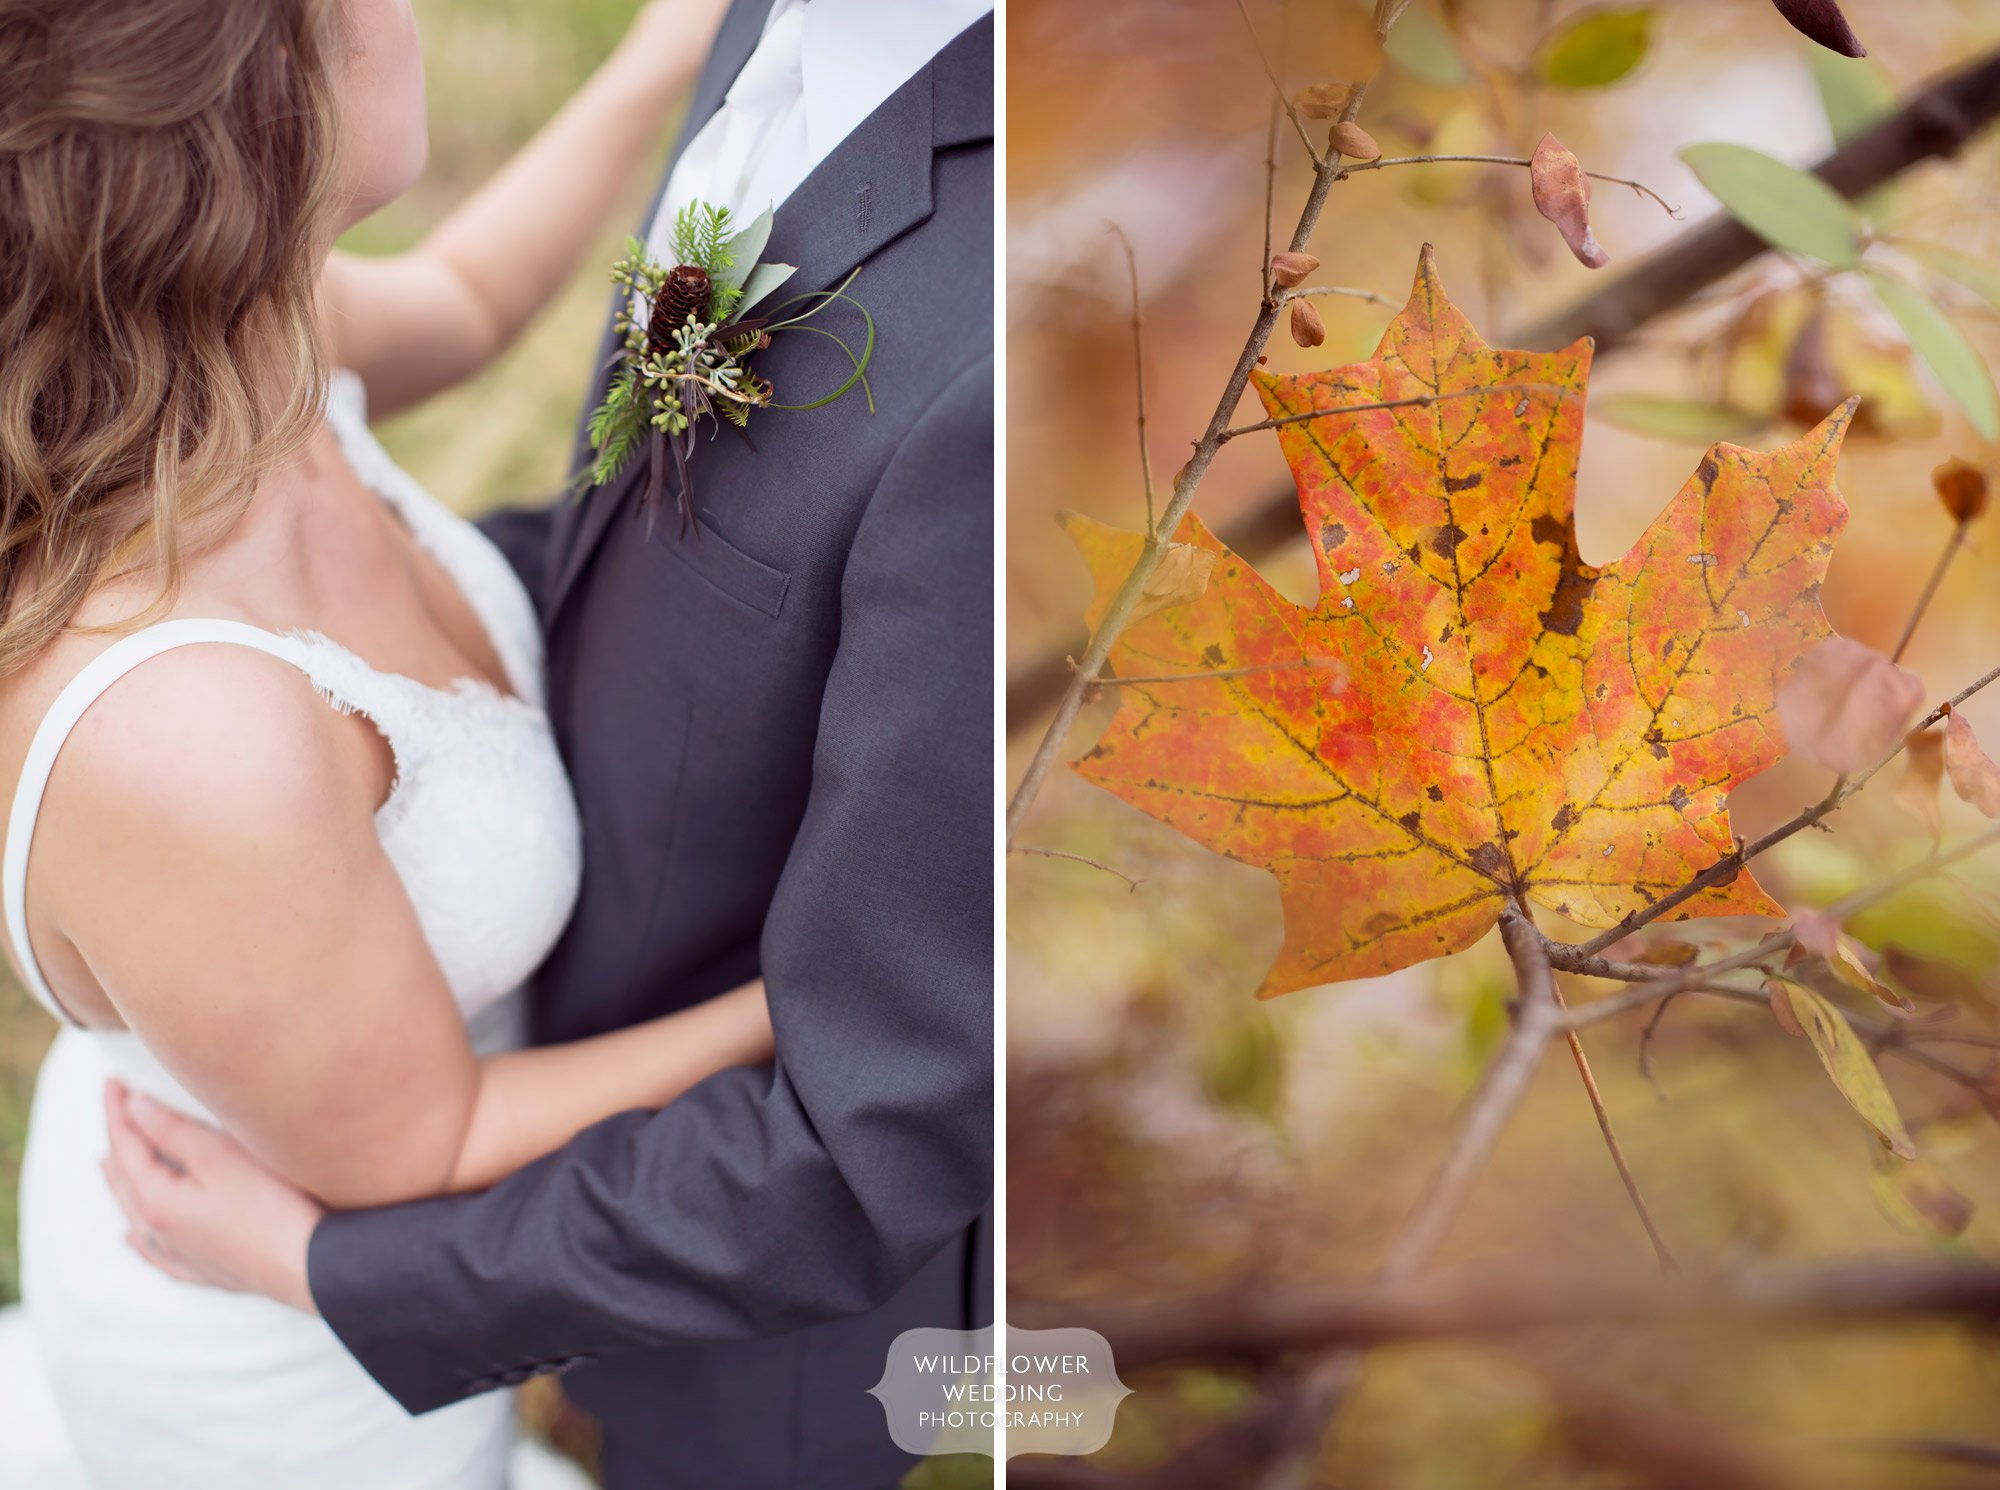 The bride and groom with fall foliage for their November wedding at the Blue Bell Farm.